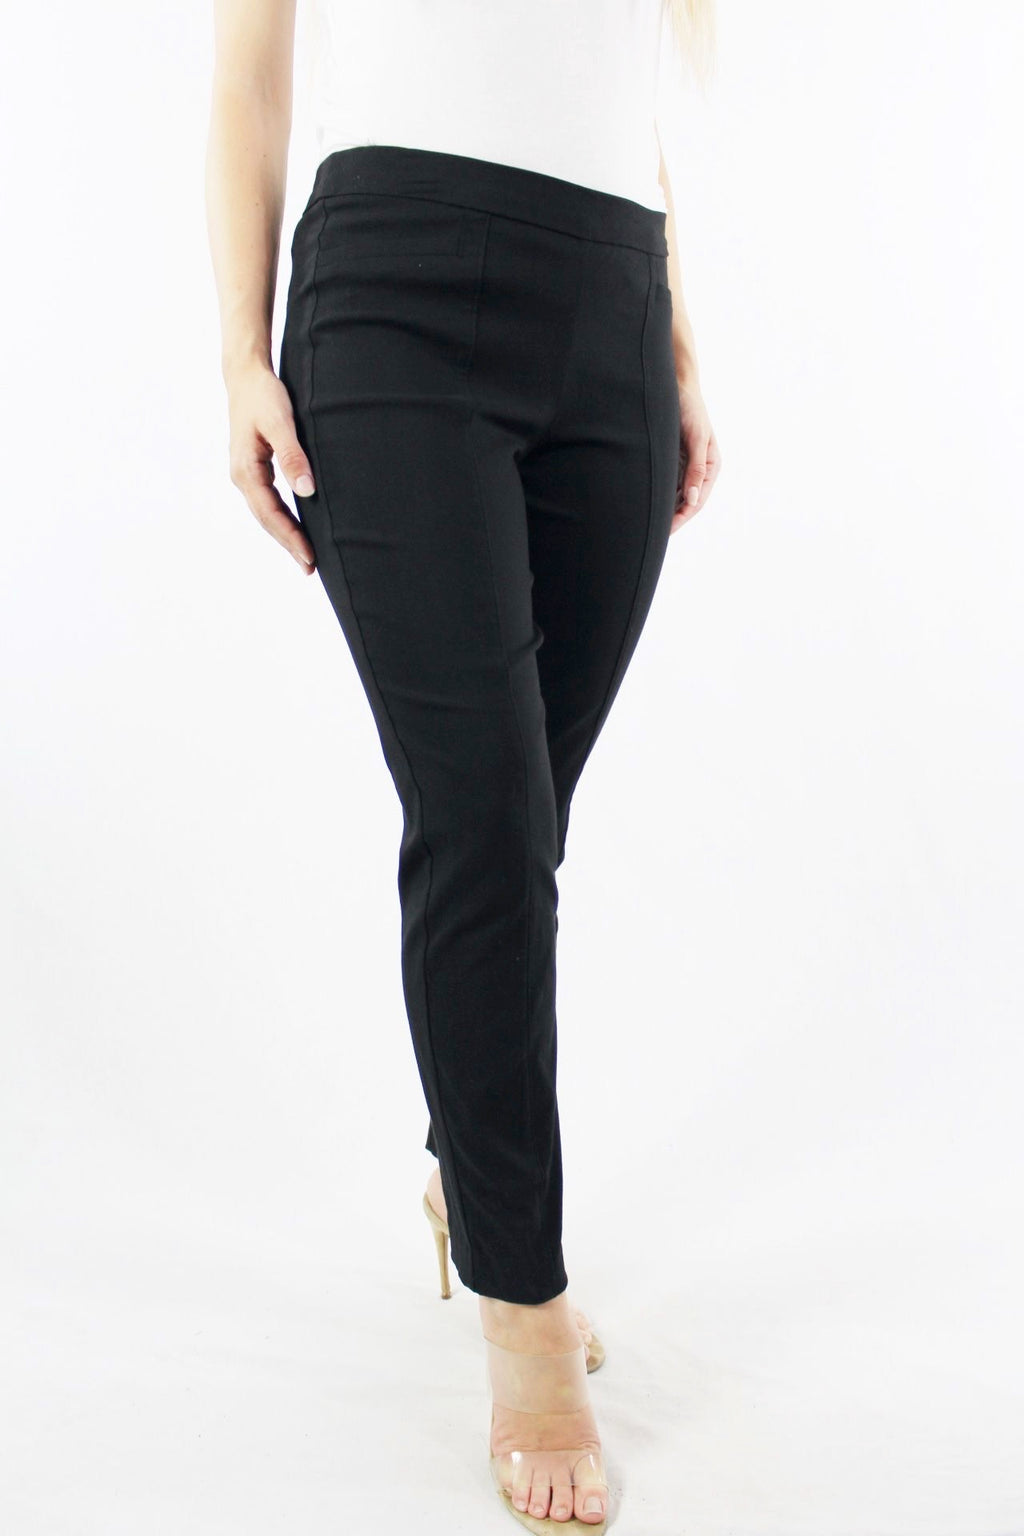 Women's Black Straight Leg Pants